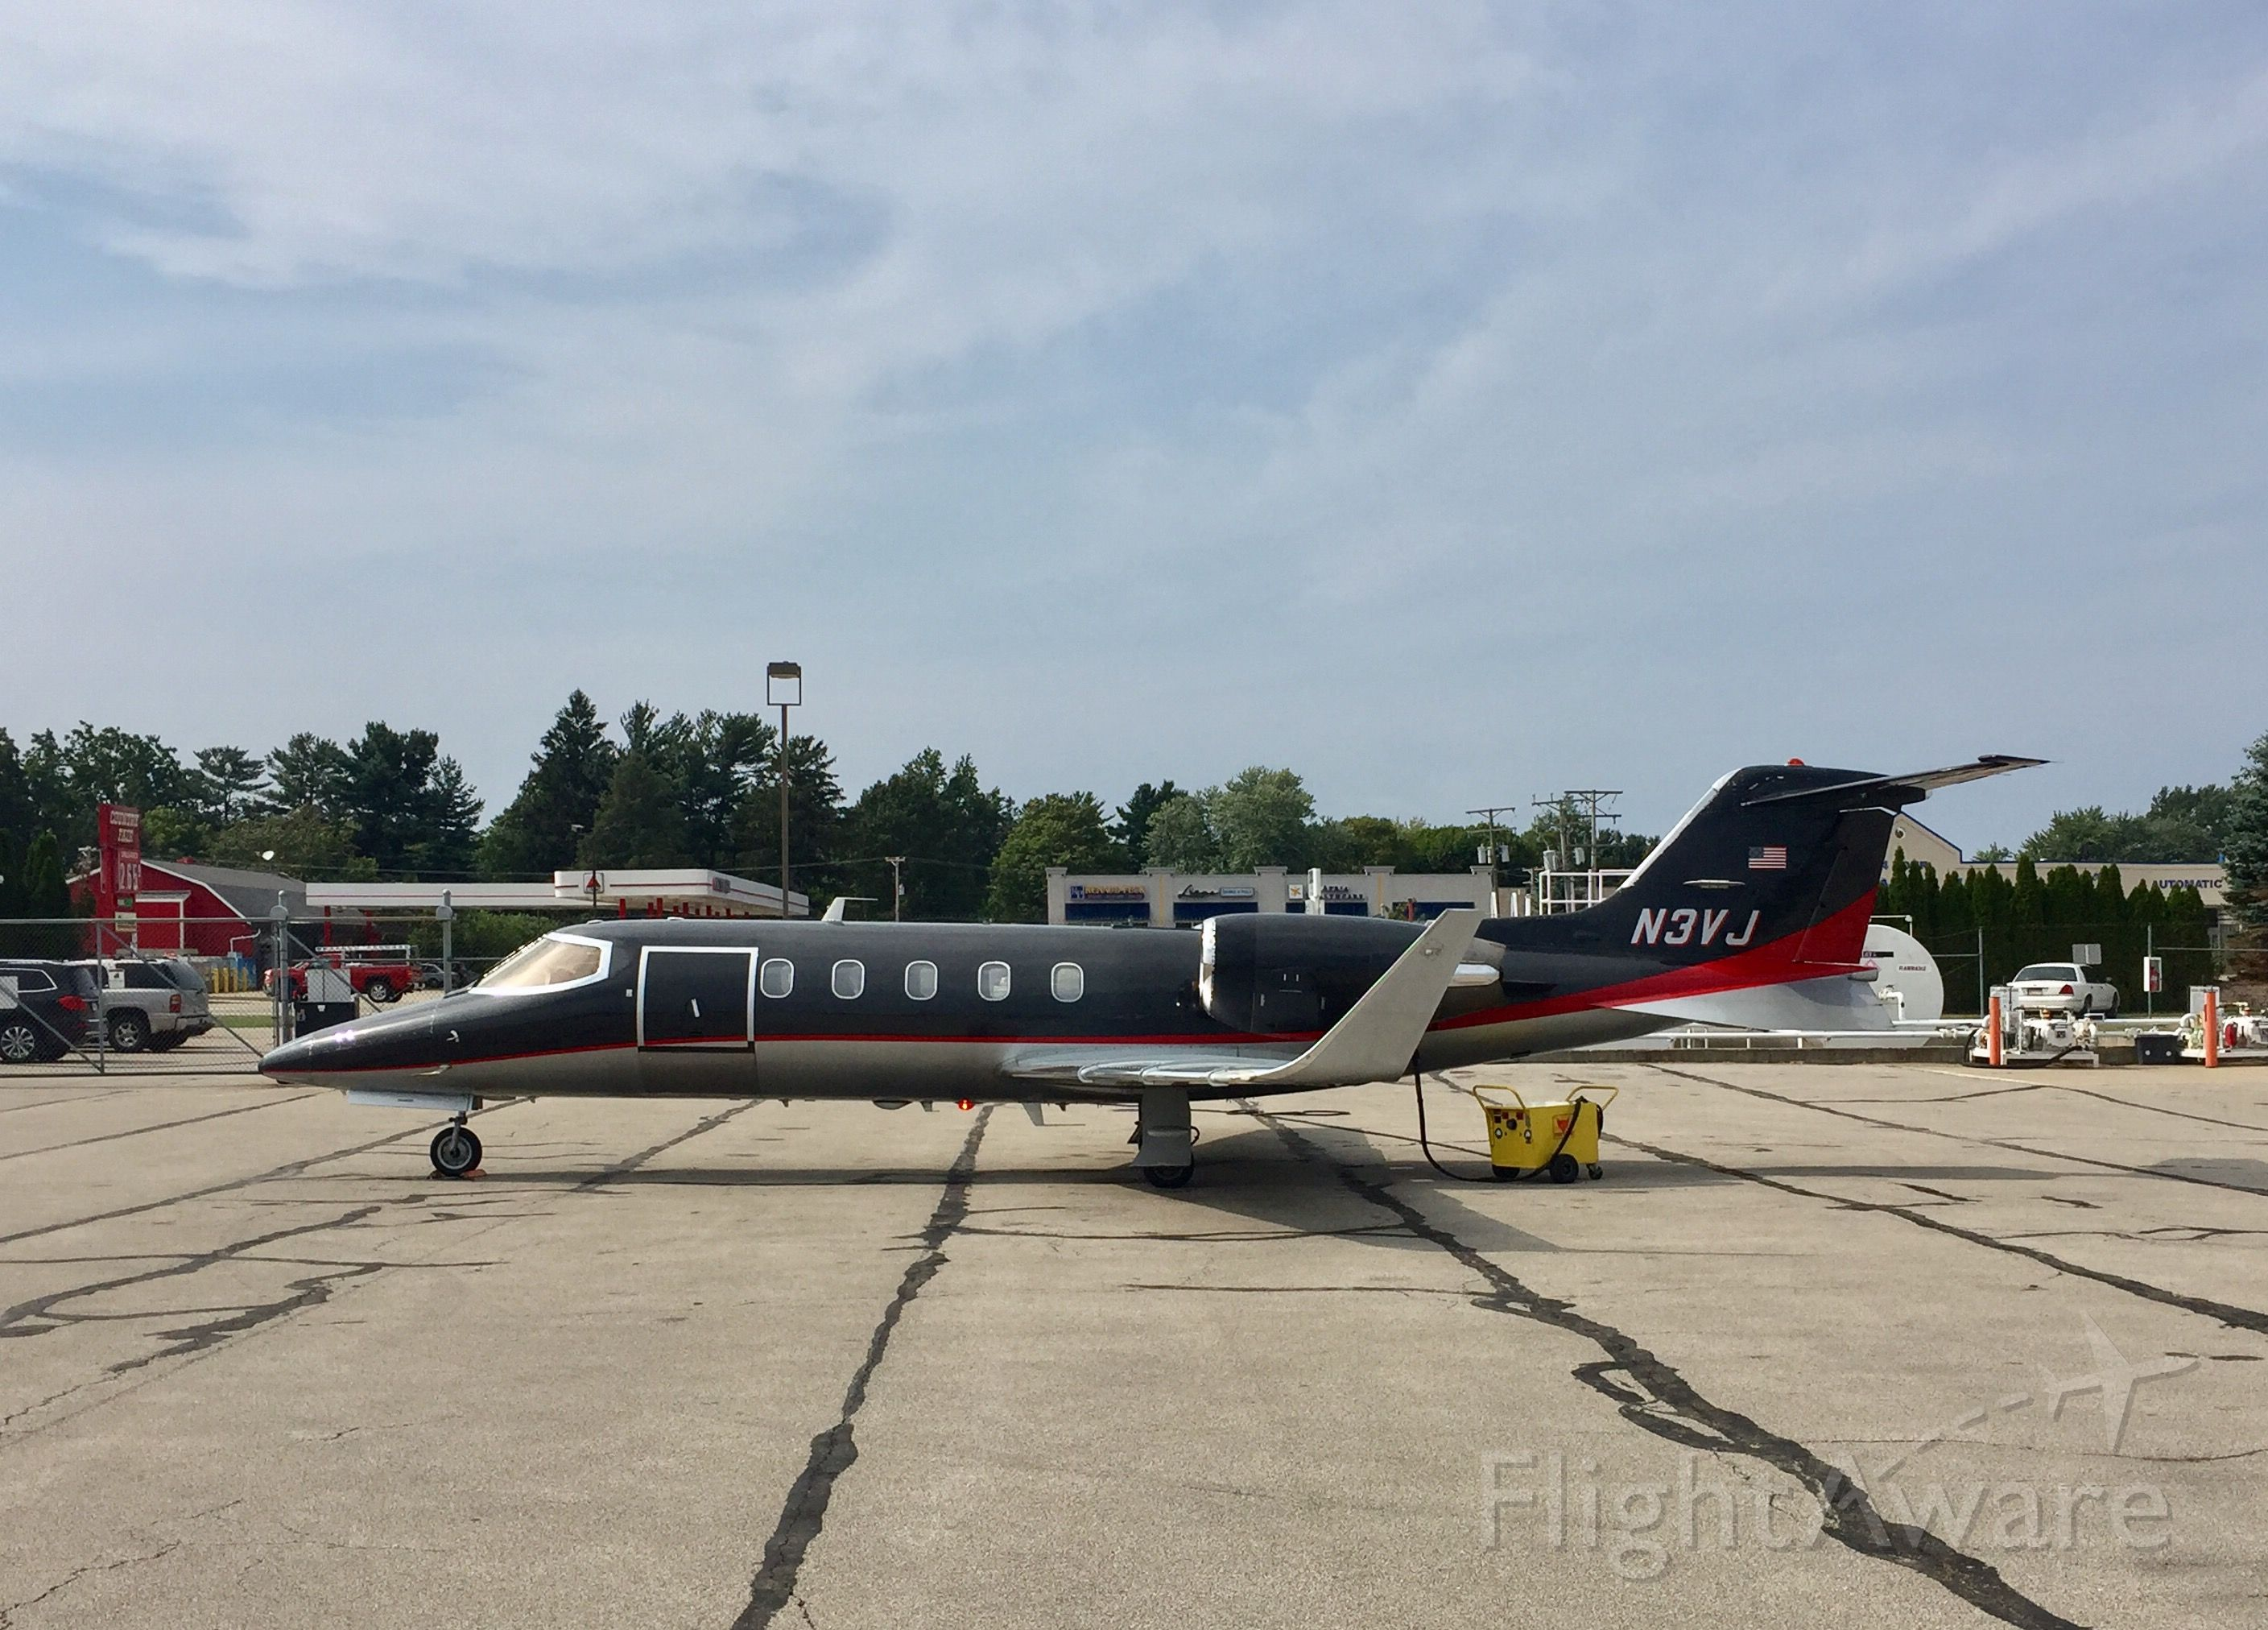 Learjet 31 (N3VJ) - N3VJ was preparing for a flight from Tom Ridge Field (Erie, PA) to an unknown destination on 8/28/17 around 3 PM EST.